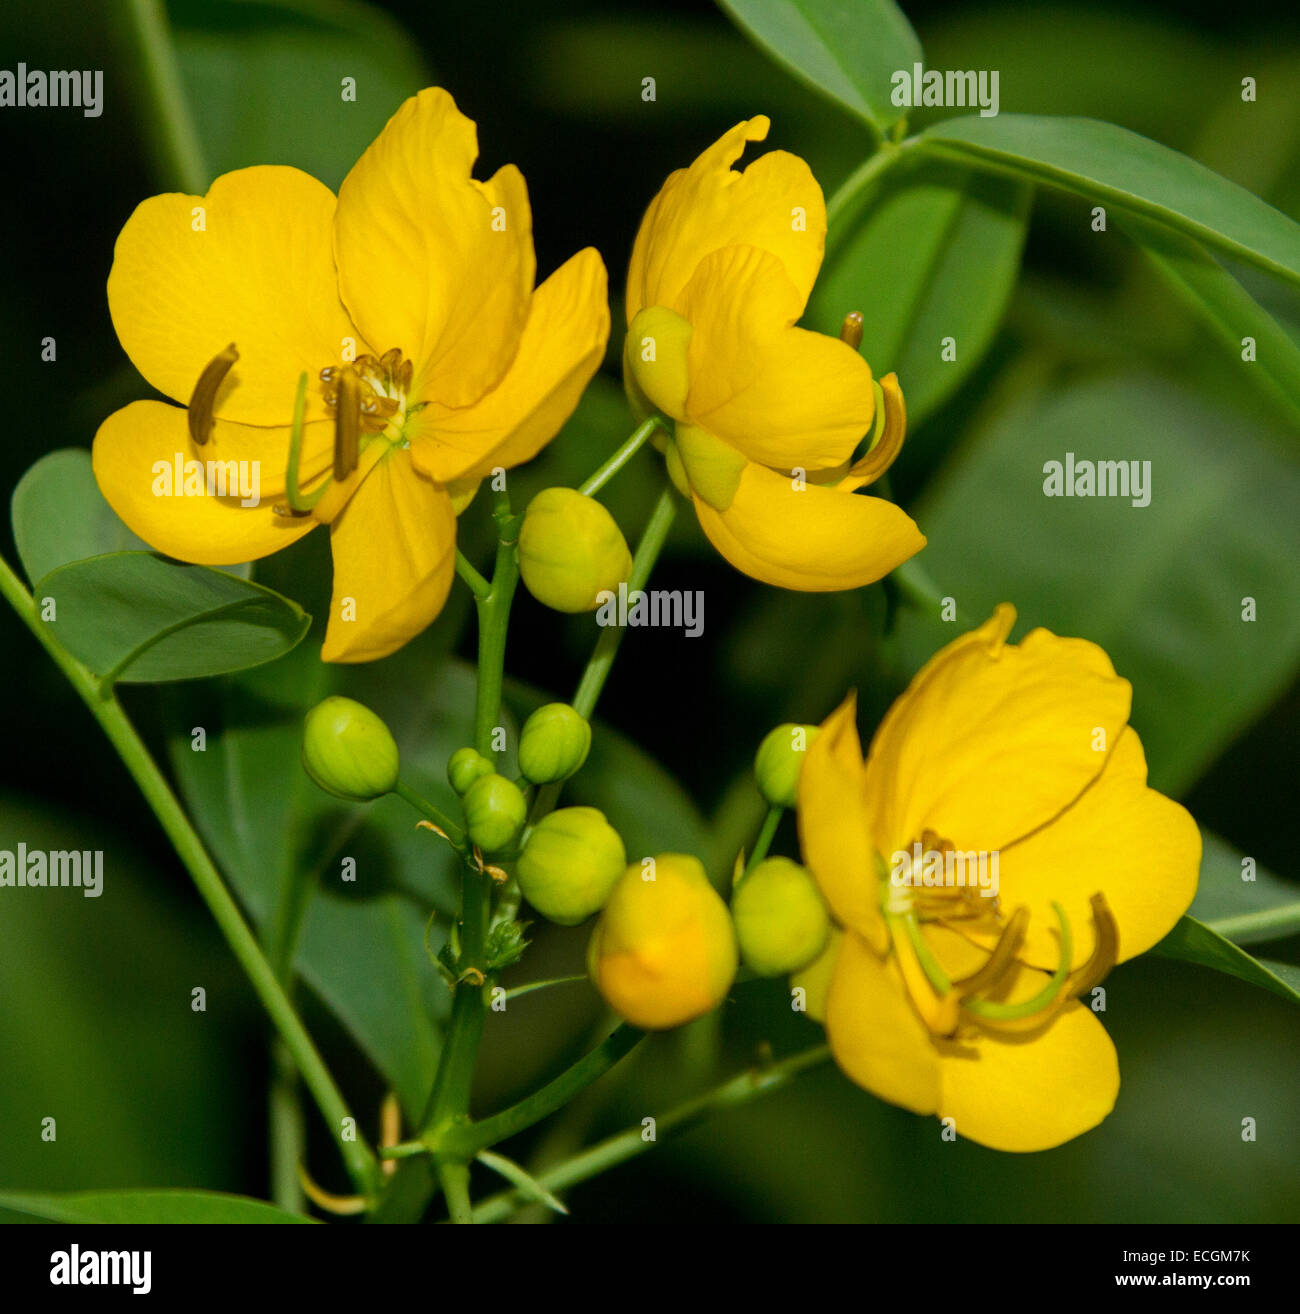 Cluster Of Golden Yellow Flowers Buds Of Easter Cassia Senna